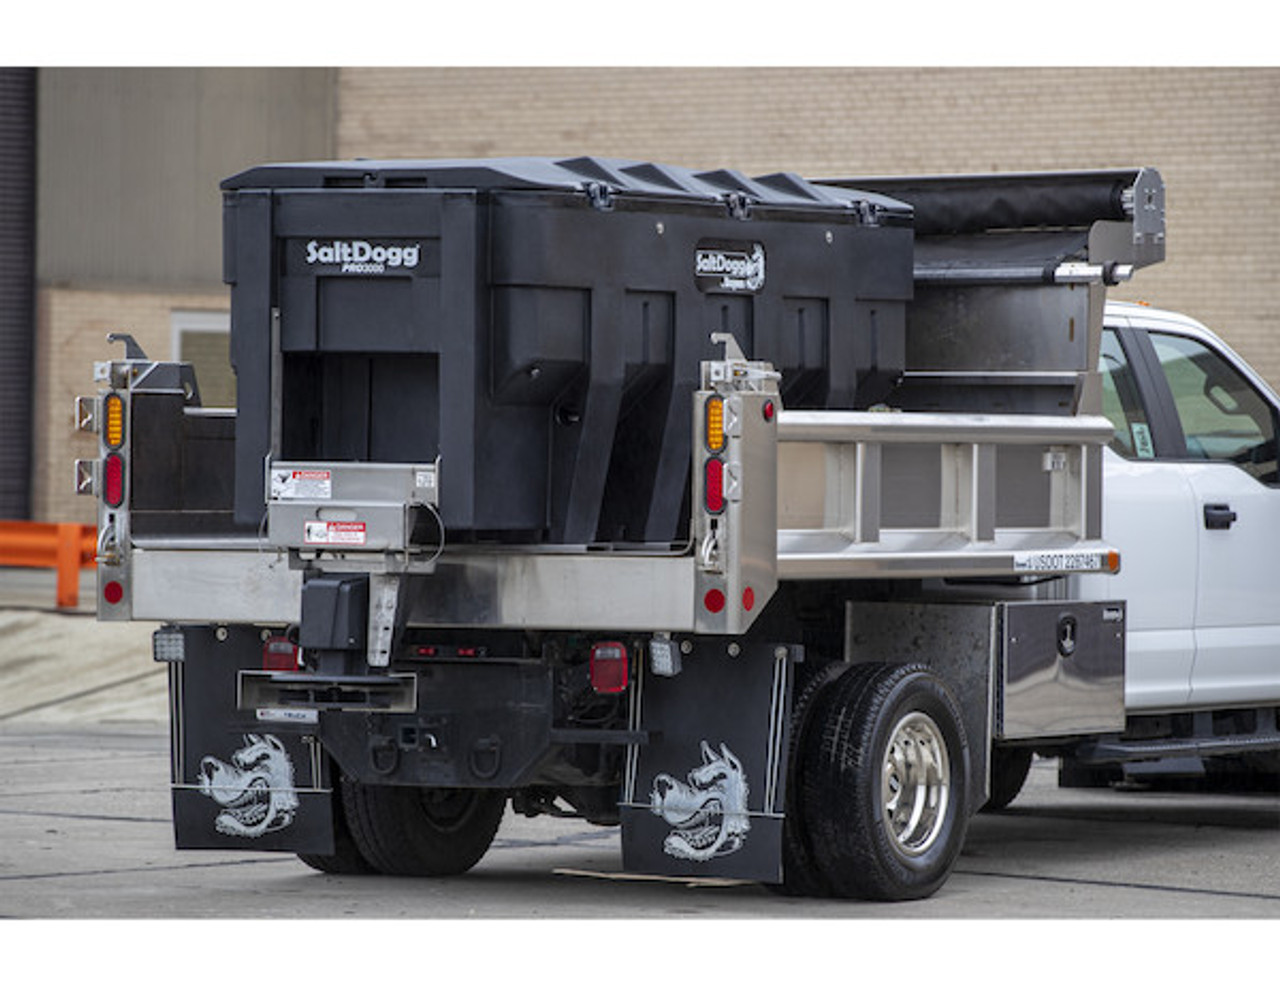 PRO3000 BUYERS SaltDogg® PRO3000 Electric Poly Hopper Spreader With Auger 5